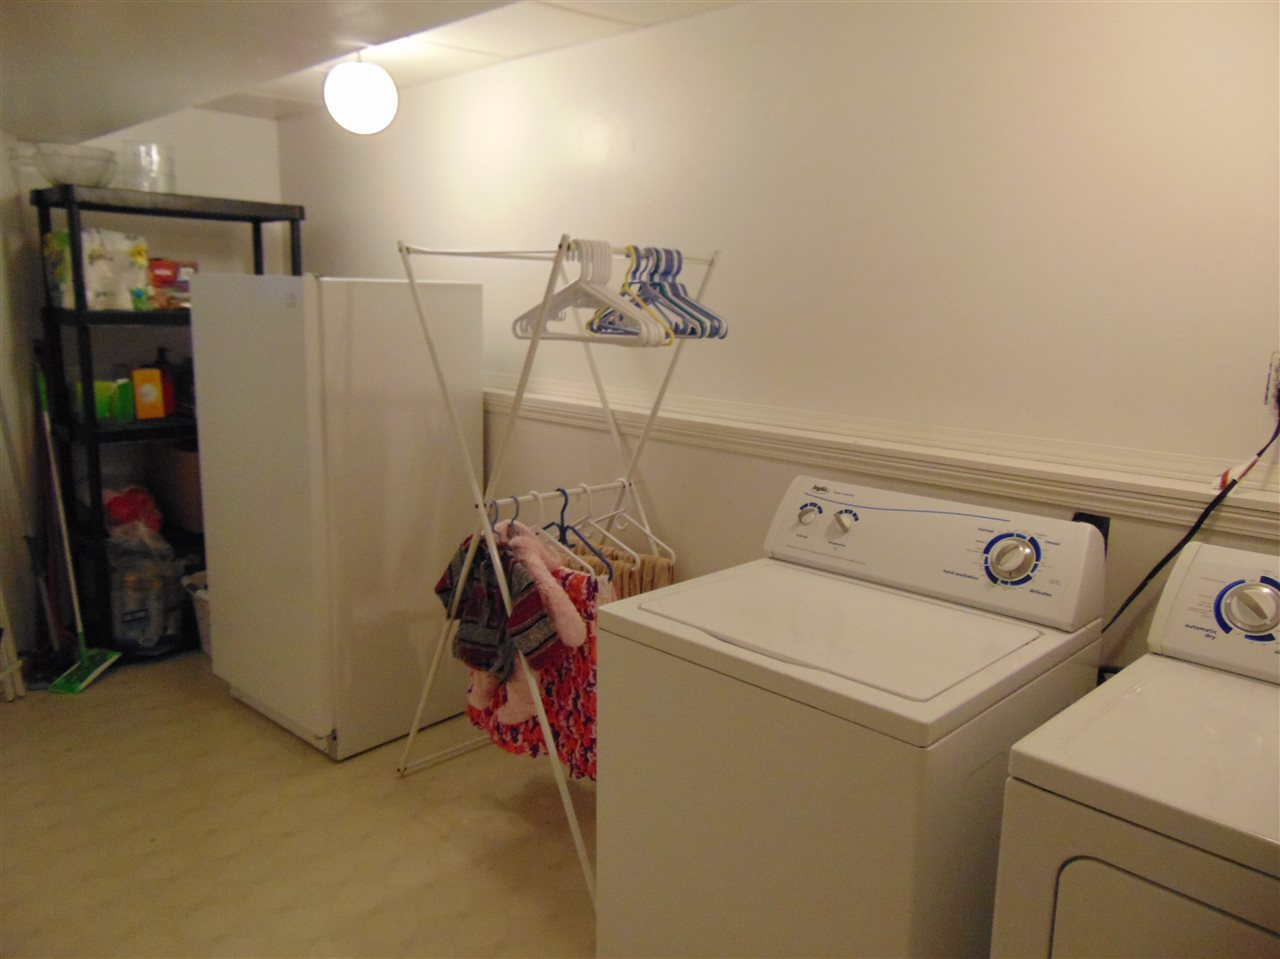 Awesome laundry room with lots of extra storage space!